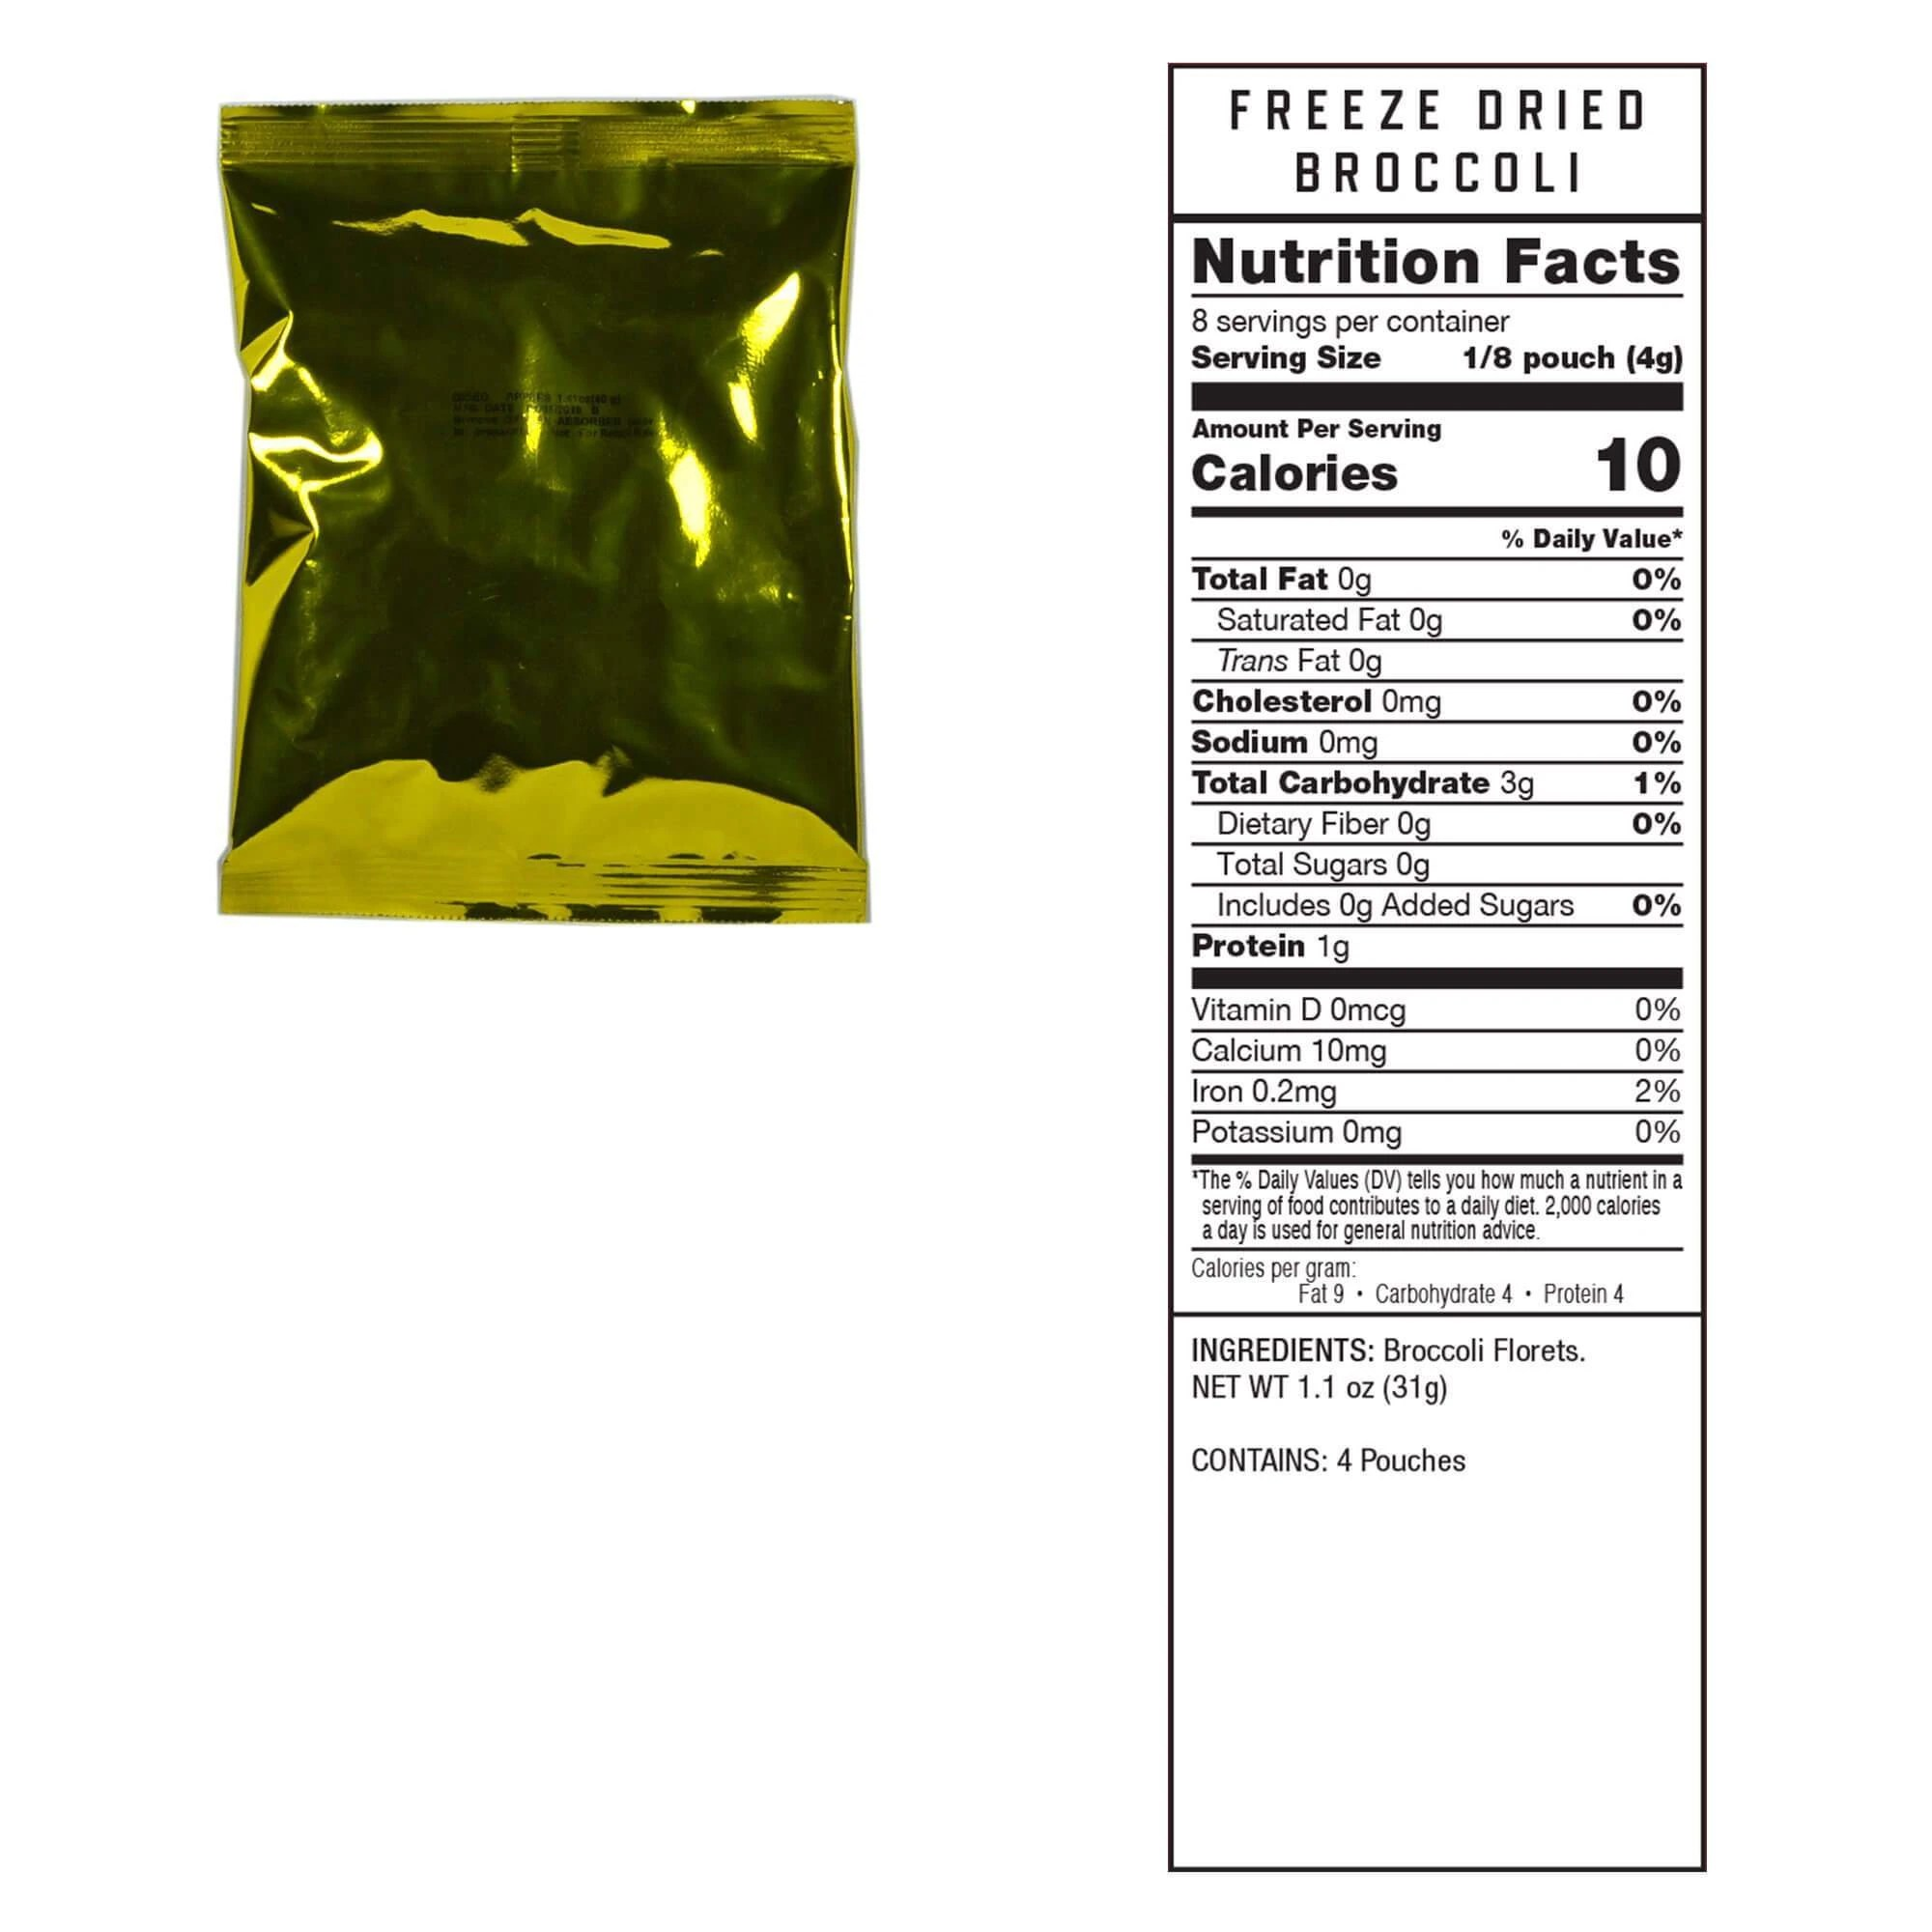 RW-broccoli-Ready-wise-120-Serving-Best-Freeze-Dried-Vegetables-Bucket-for-sale-Long-term-Food-Storage